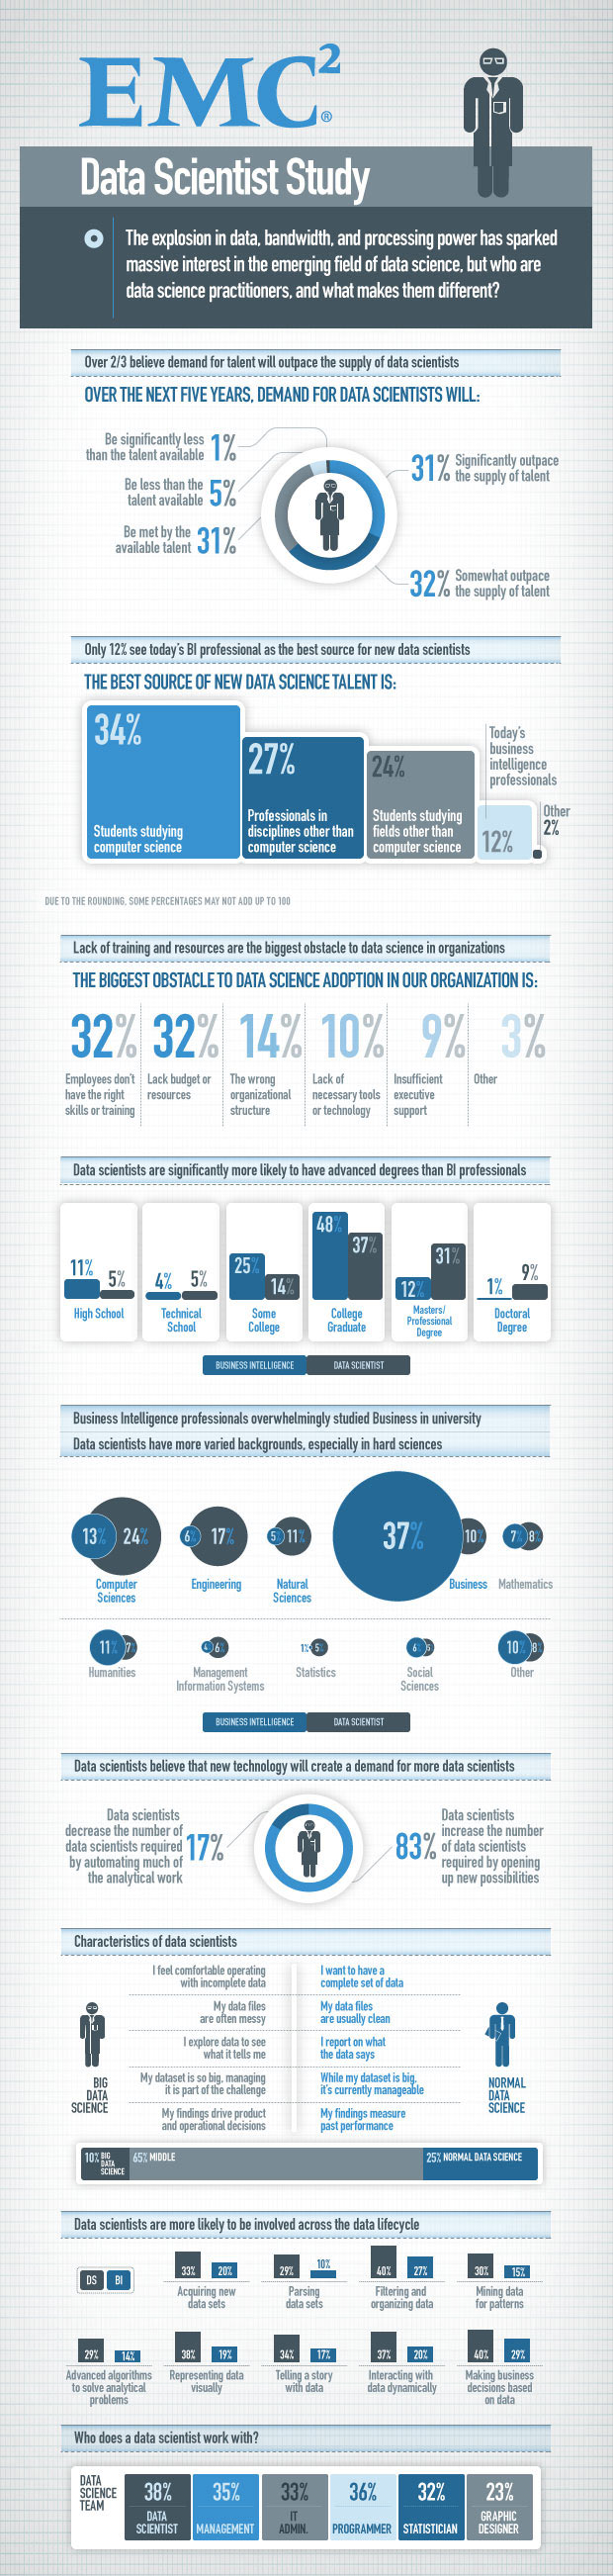 emc-data-scientist-infogrpahic